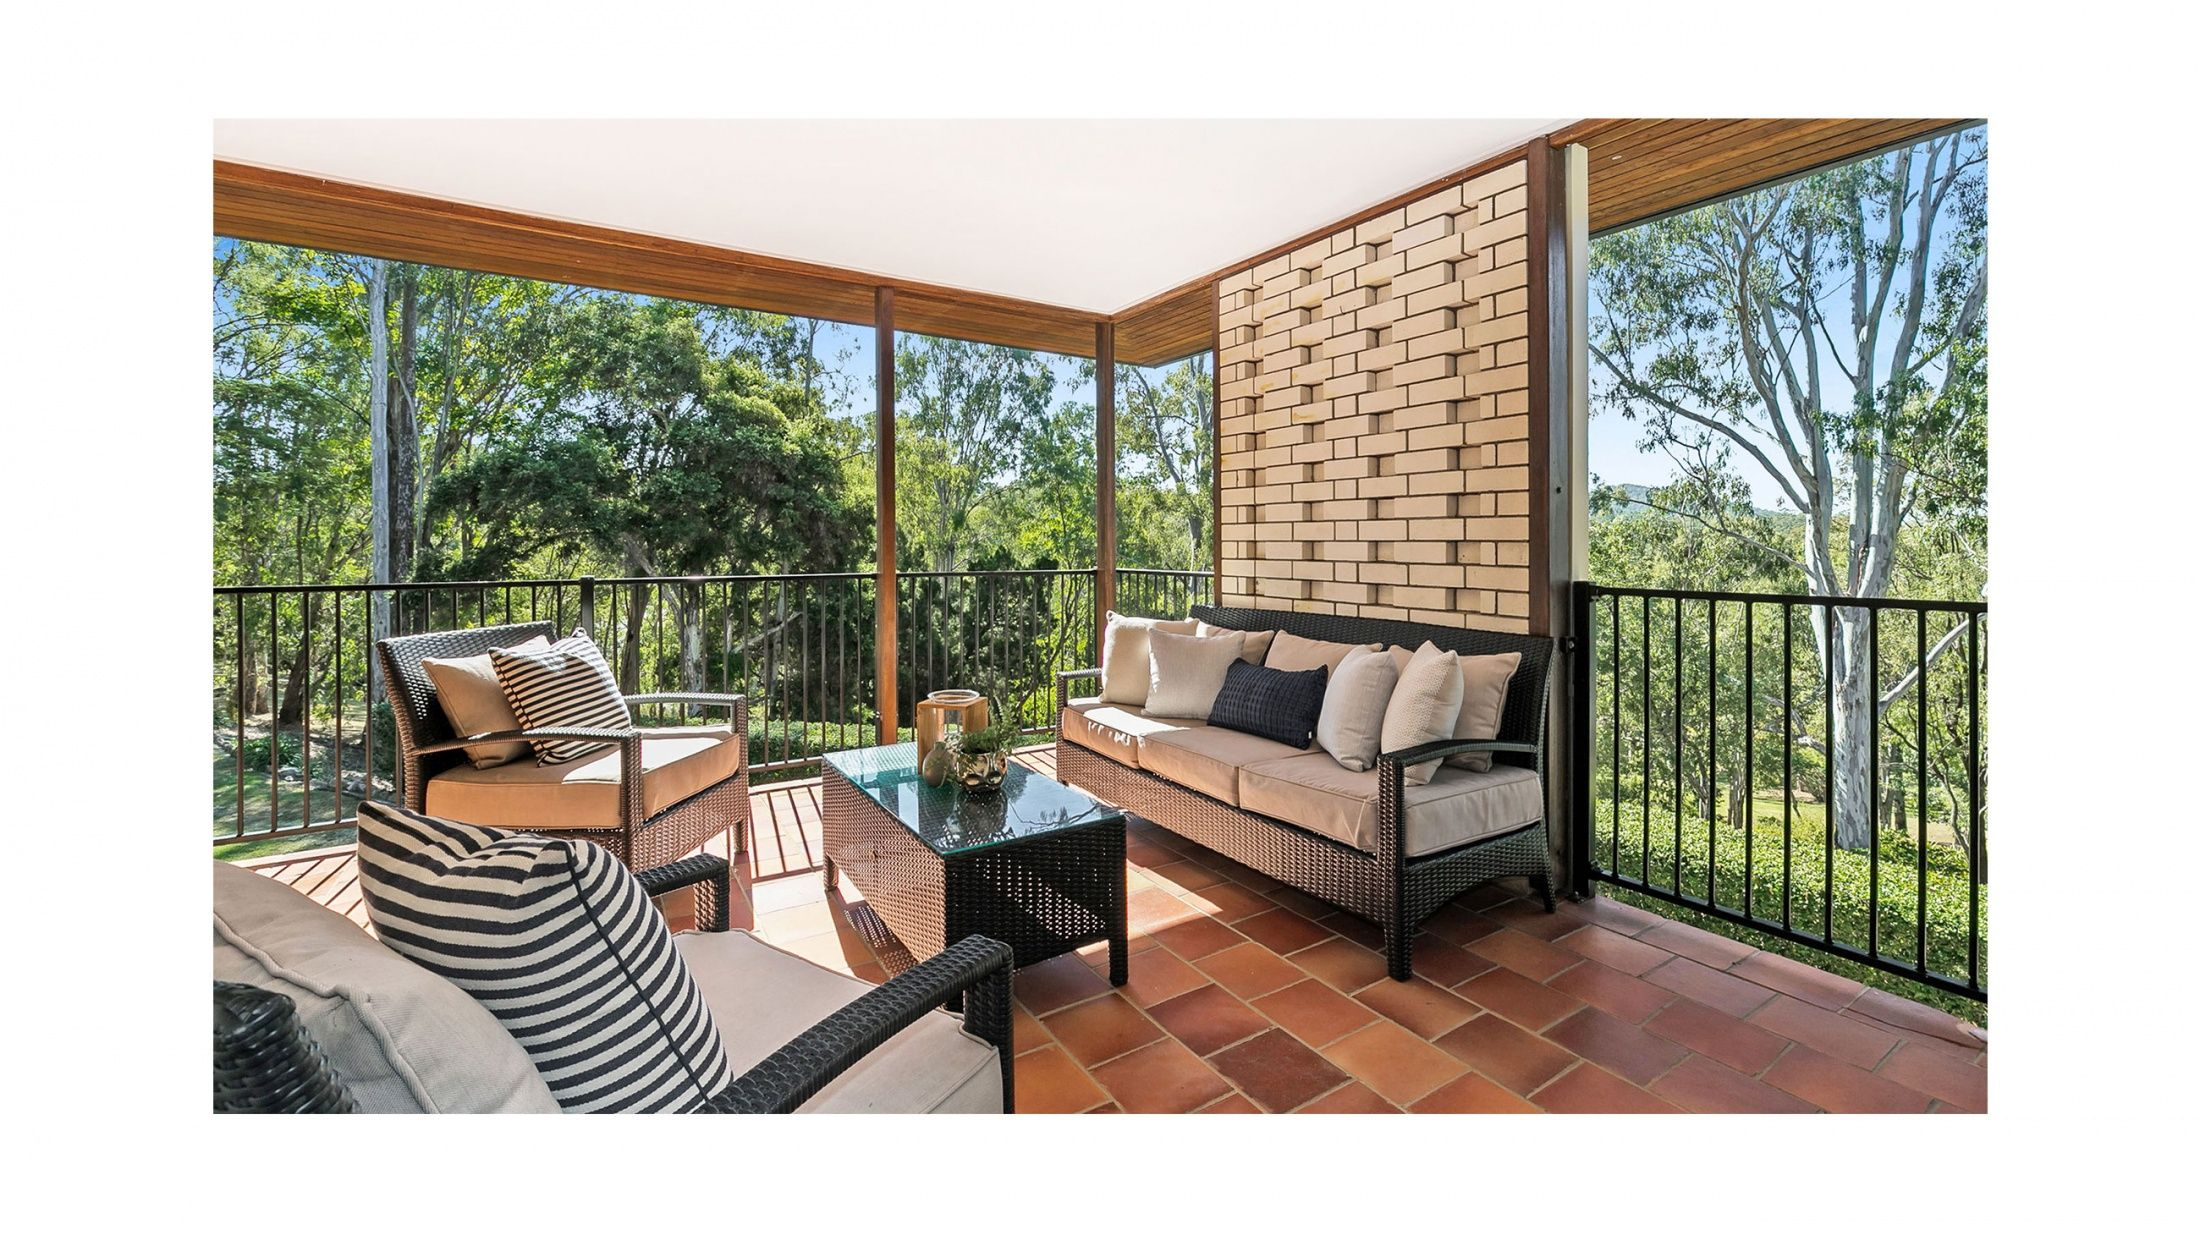 European Daring And Dash In Brisbane | Outdoor furniture ...